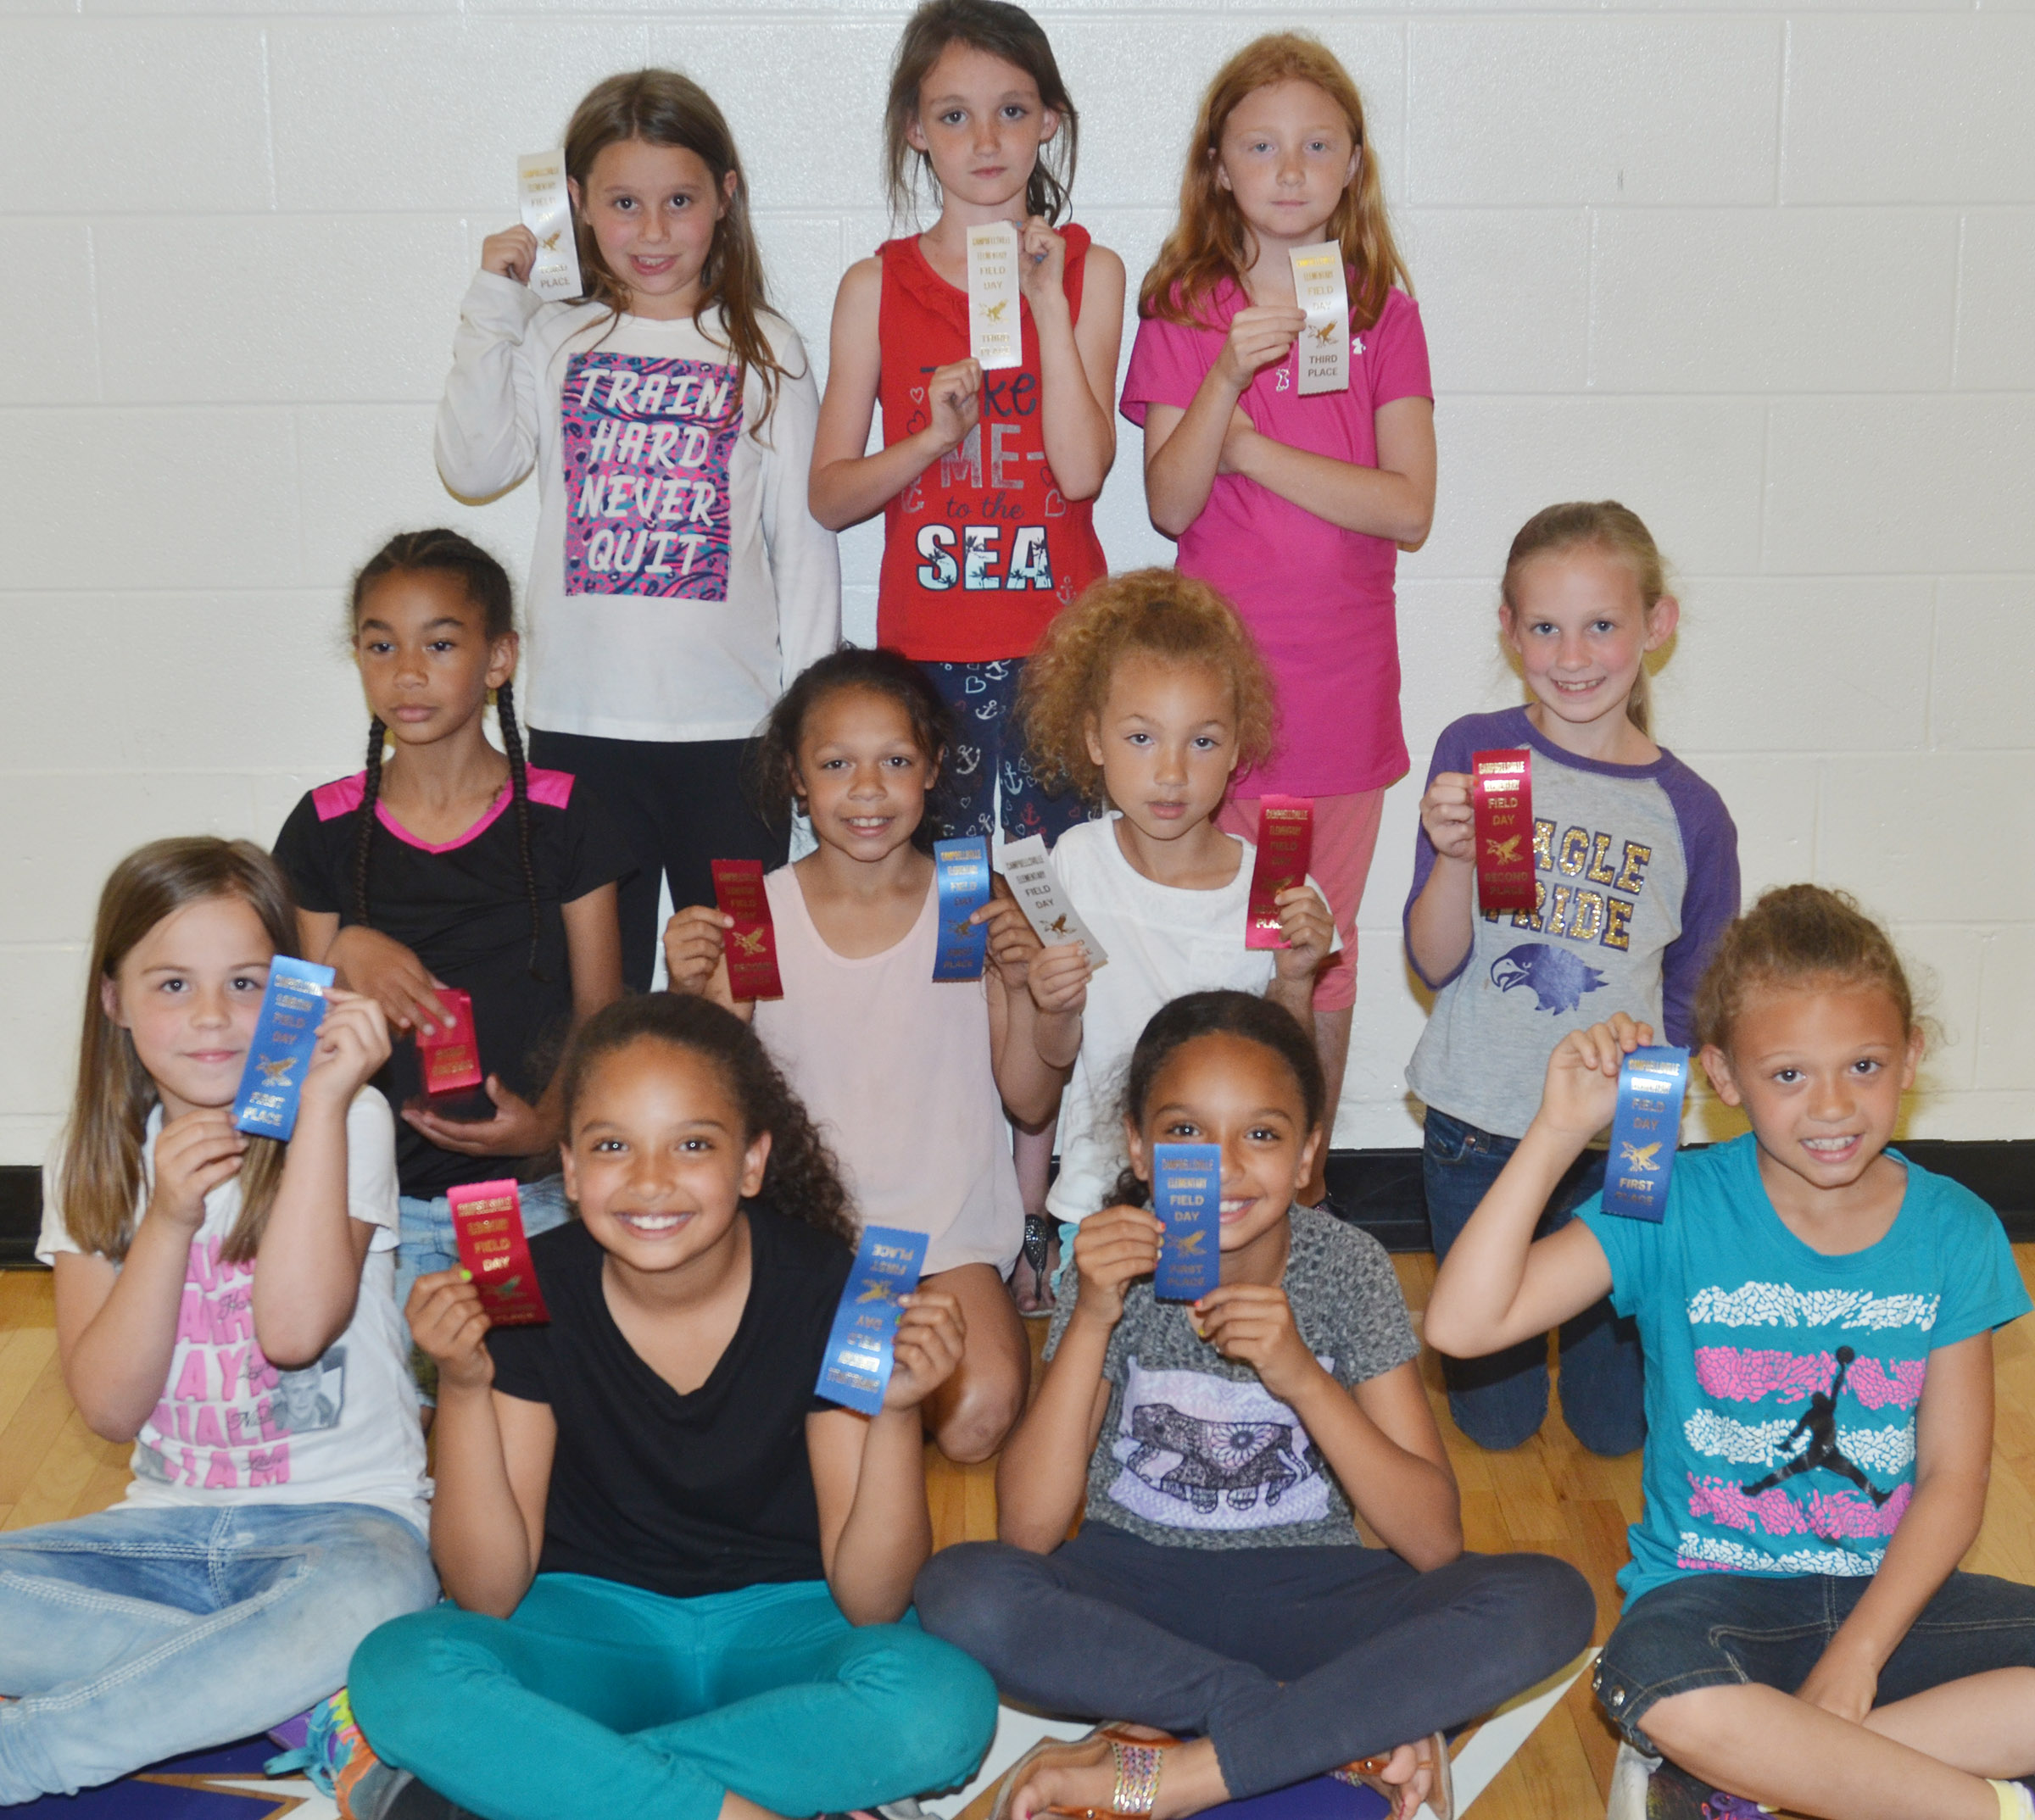 CES third-grade girls who were classroom winners in the 50-yard dash are, from left, front, Chloe Bates, Aleecia Knezevic, Alyssa Knezevic and Alicia Spaulding, first place winners. Second row, De'Asia Fisher, Breona Bridgewater, Raelyn Dunn and Kendall Bright, second place winners. Back, McKailynn Grubaugh, Paige Ritchie and Savannah Wethington, third place winners. Absent from the photo is Madie Gebler, who was a third place winner. Overall, Breona Bridgewater was first, Aleecia Knezevic was second and Raelyn Dunn was third.